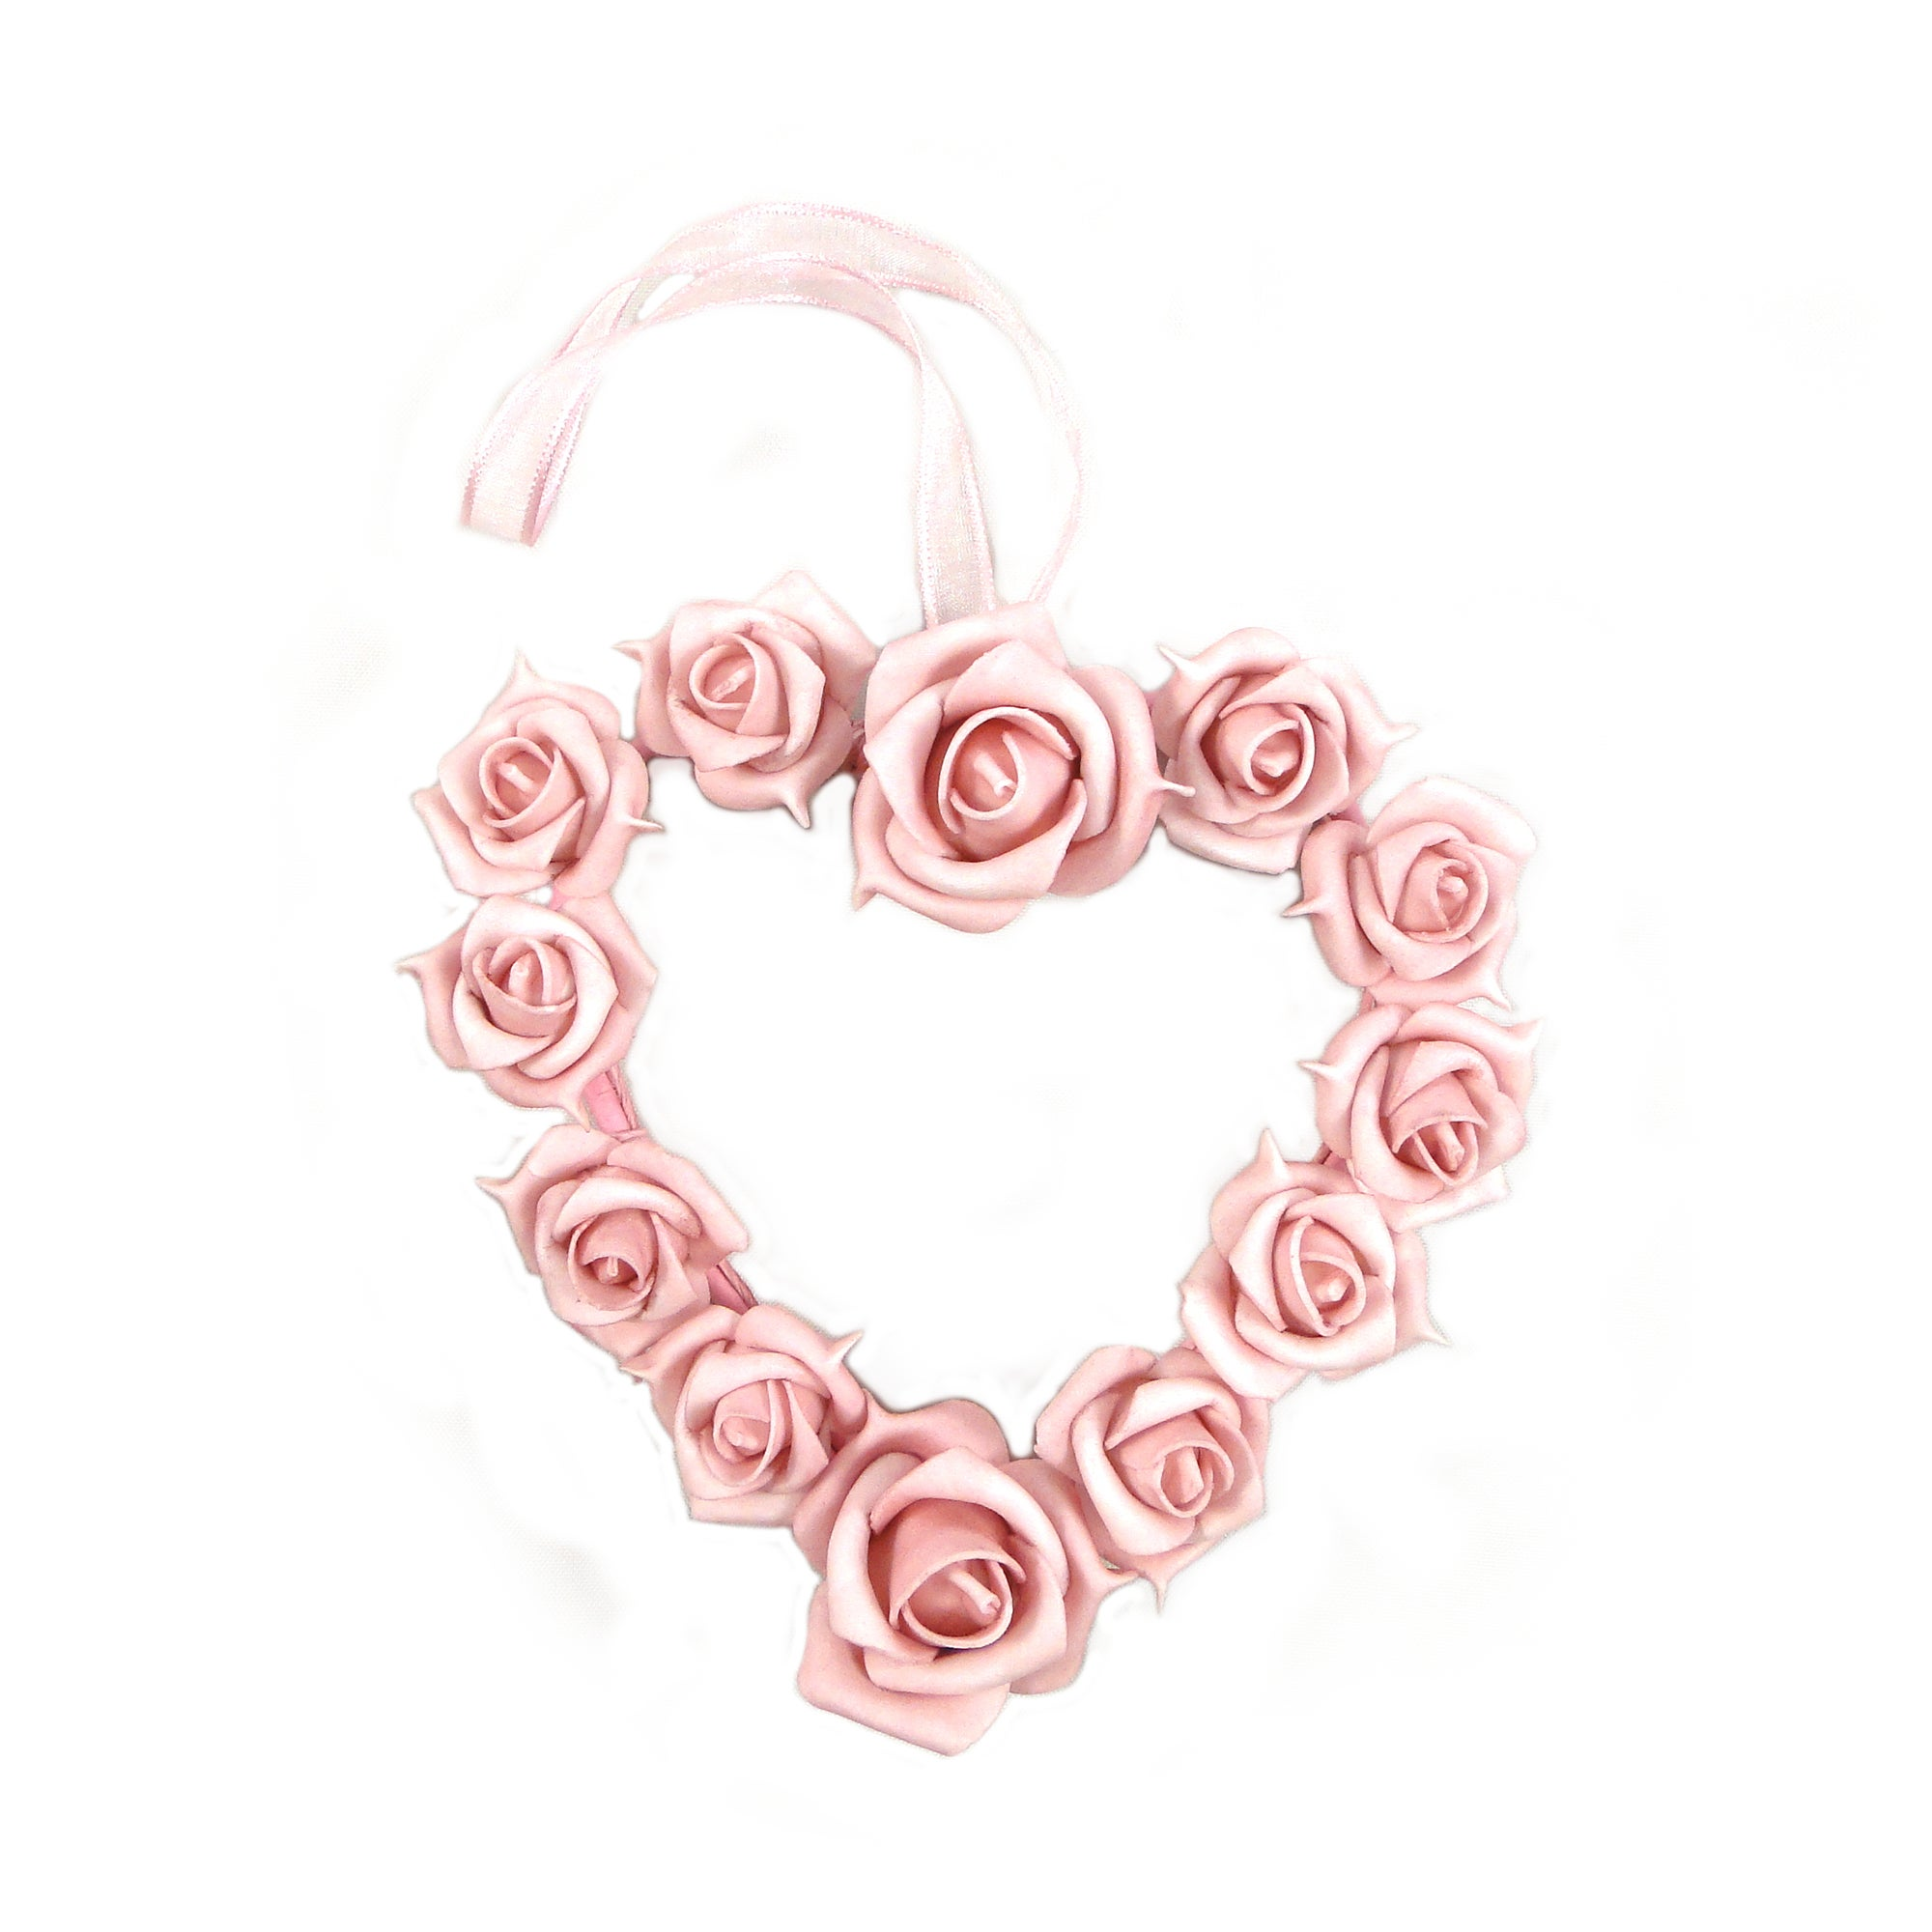 Rose Wedding Heart